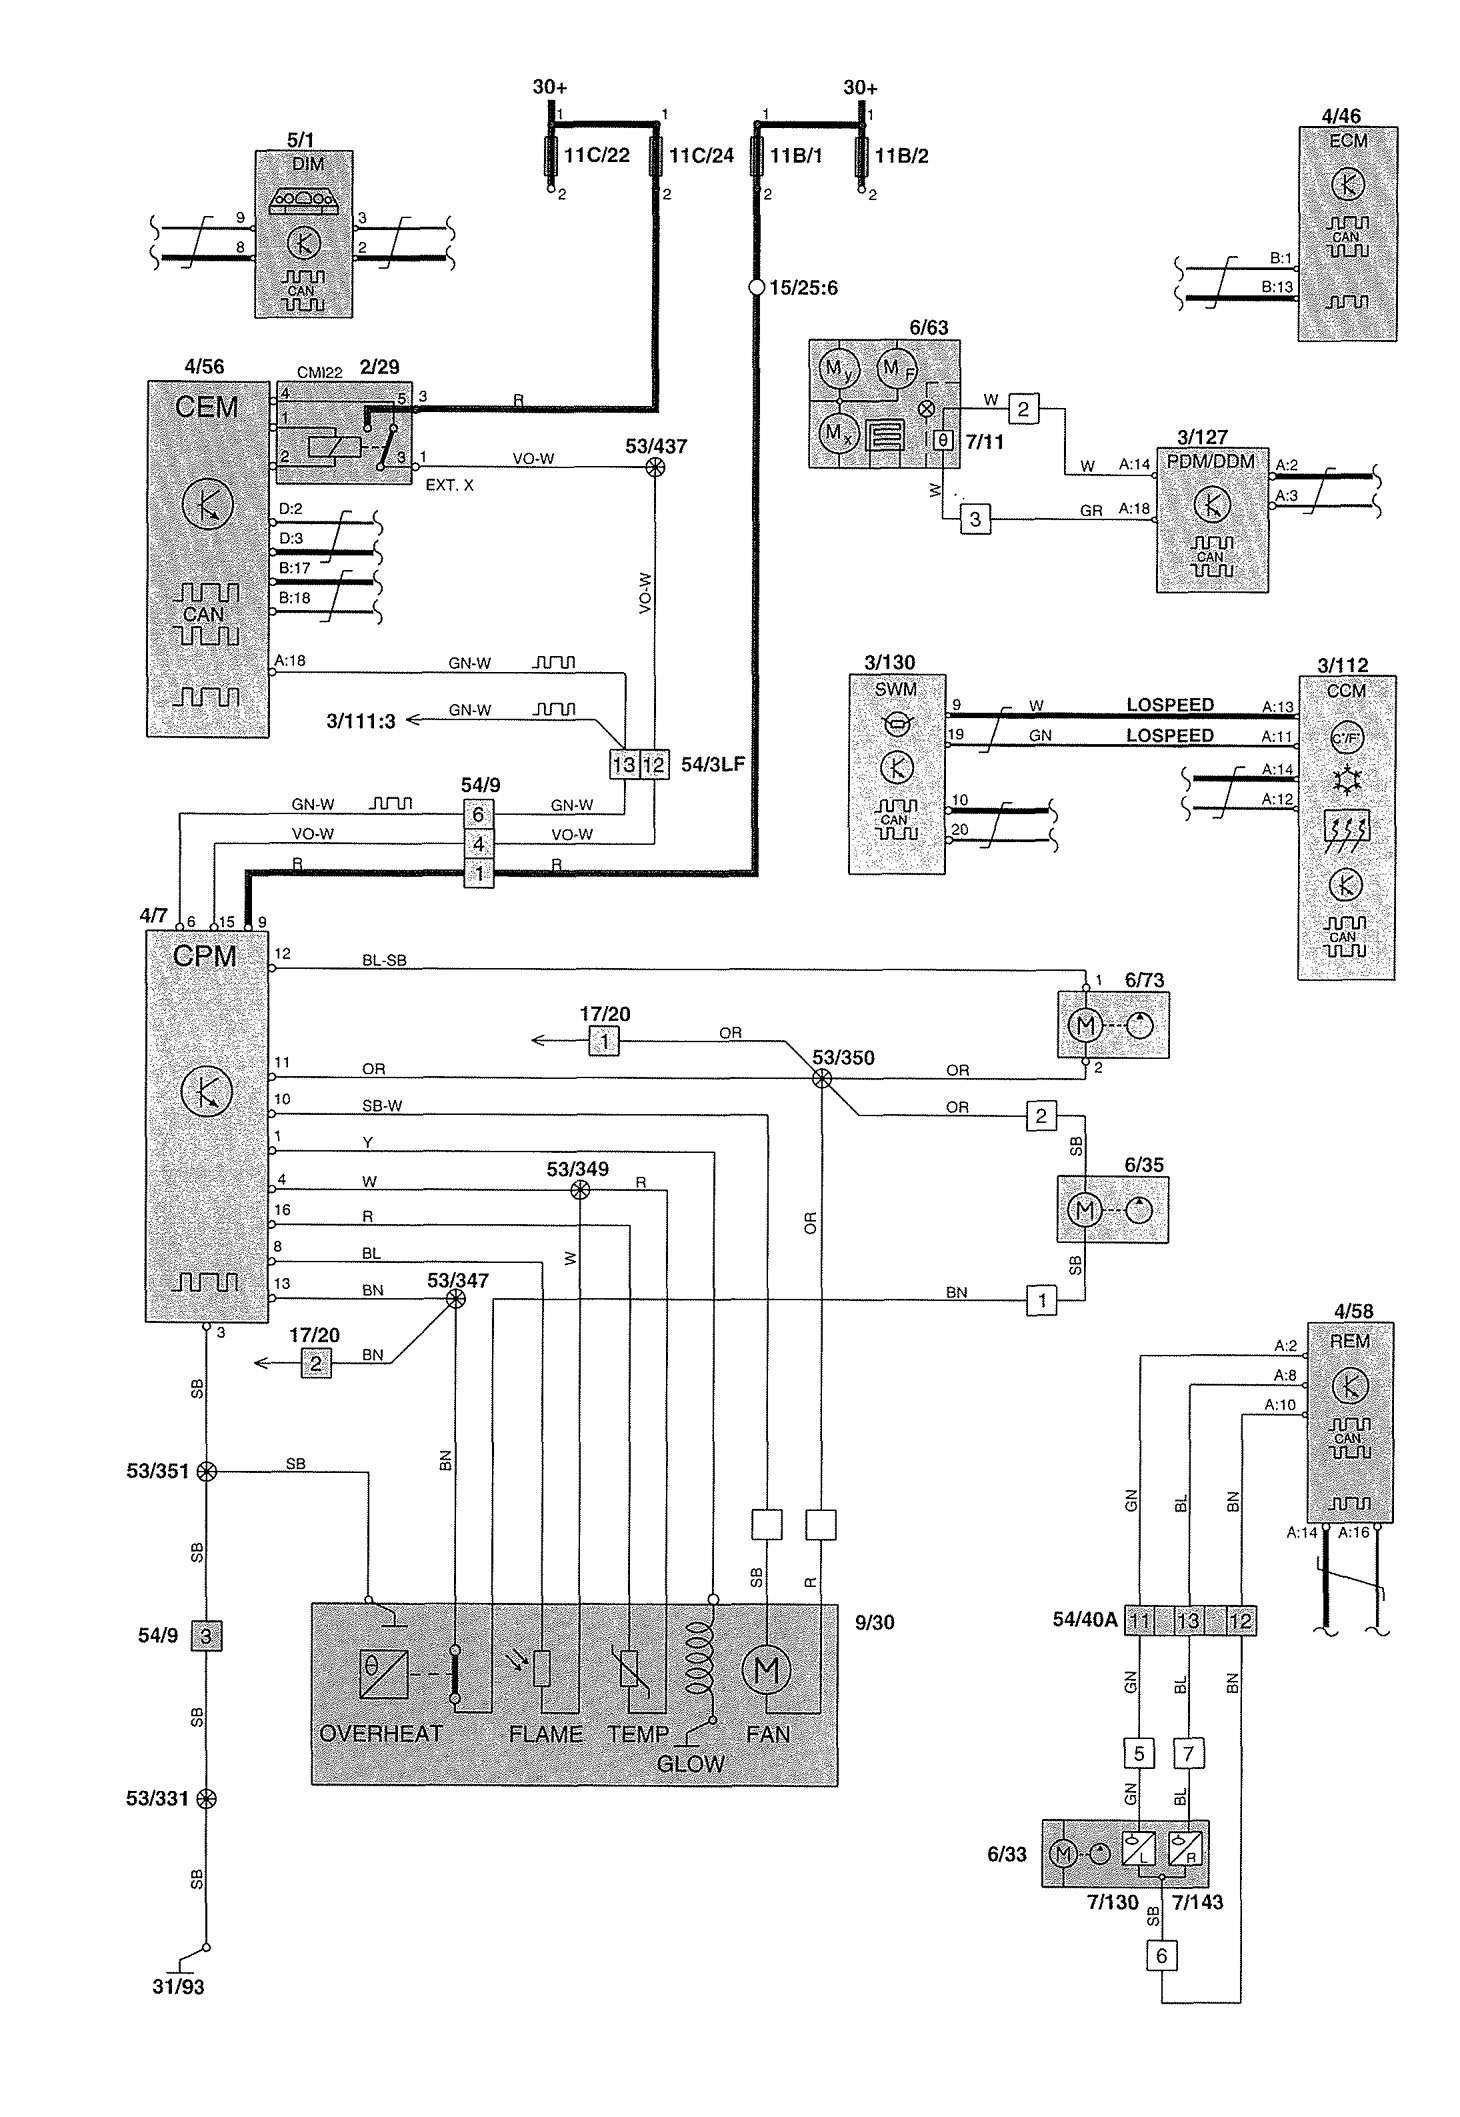 70 F250 Alternator Wiring Diagram All Kind Of Diagrams 1970 Ford F 250 2004 Volvo Xc90 Headlight Imageresizertool Com Super Duty Mustang